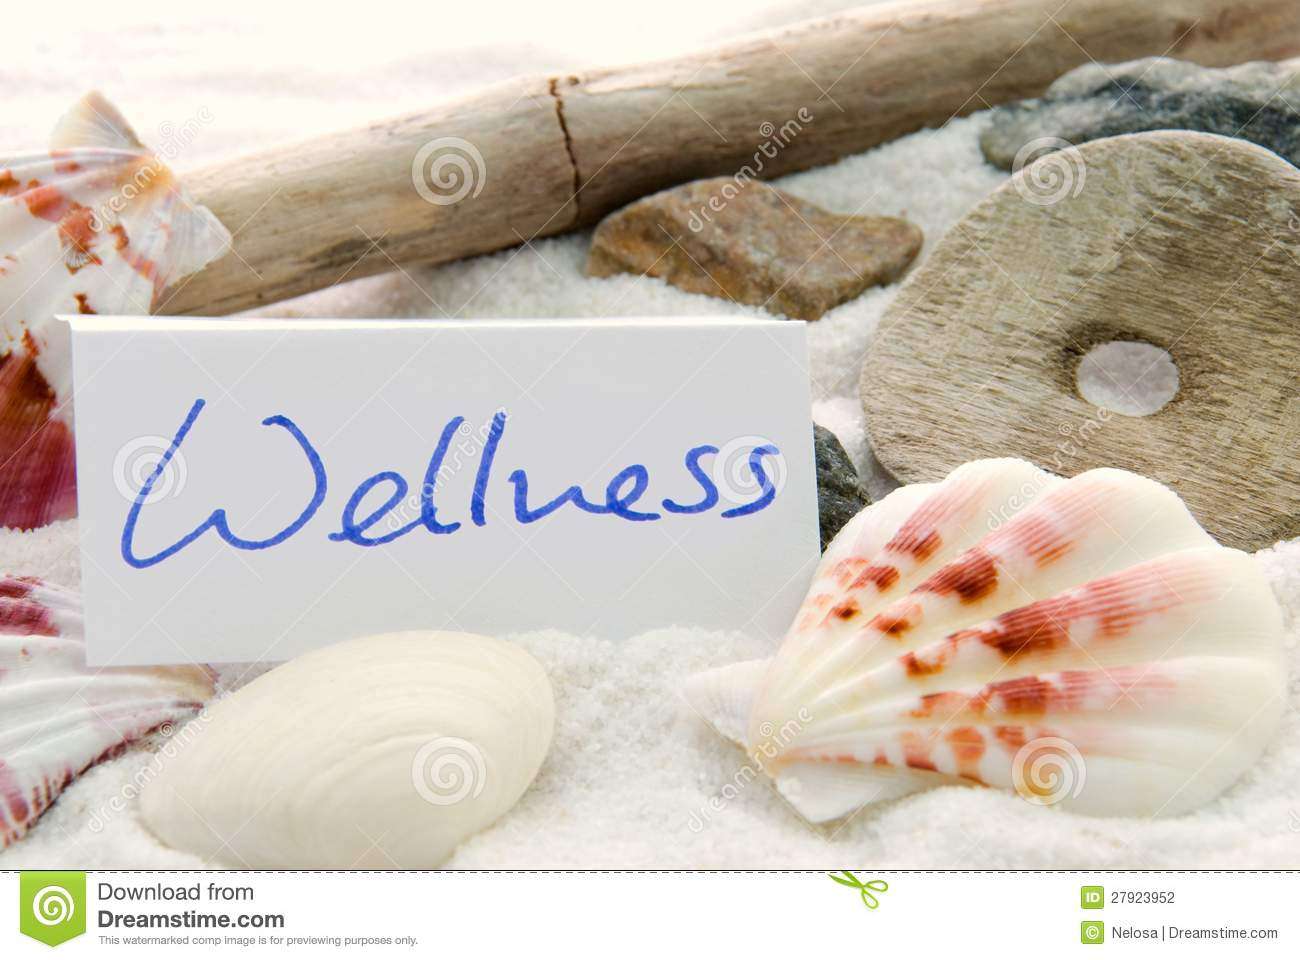 Health And Wellness Backgrounds 7465 | DFILES